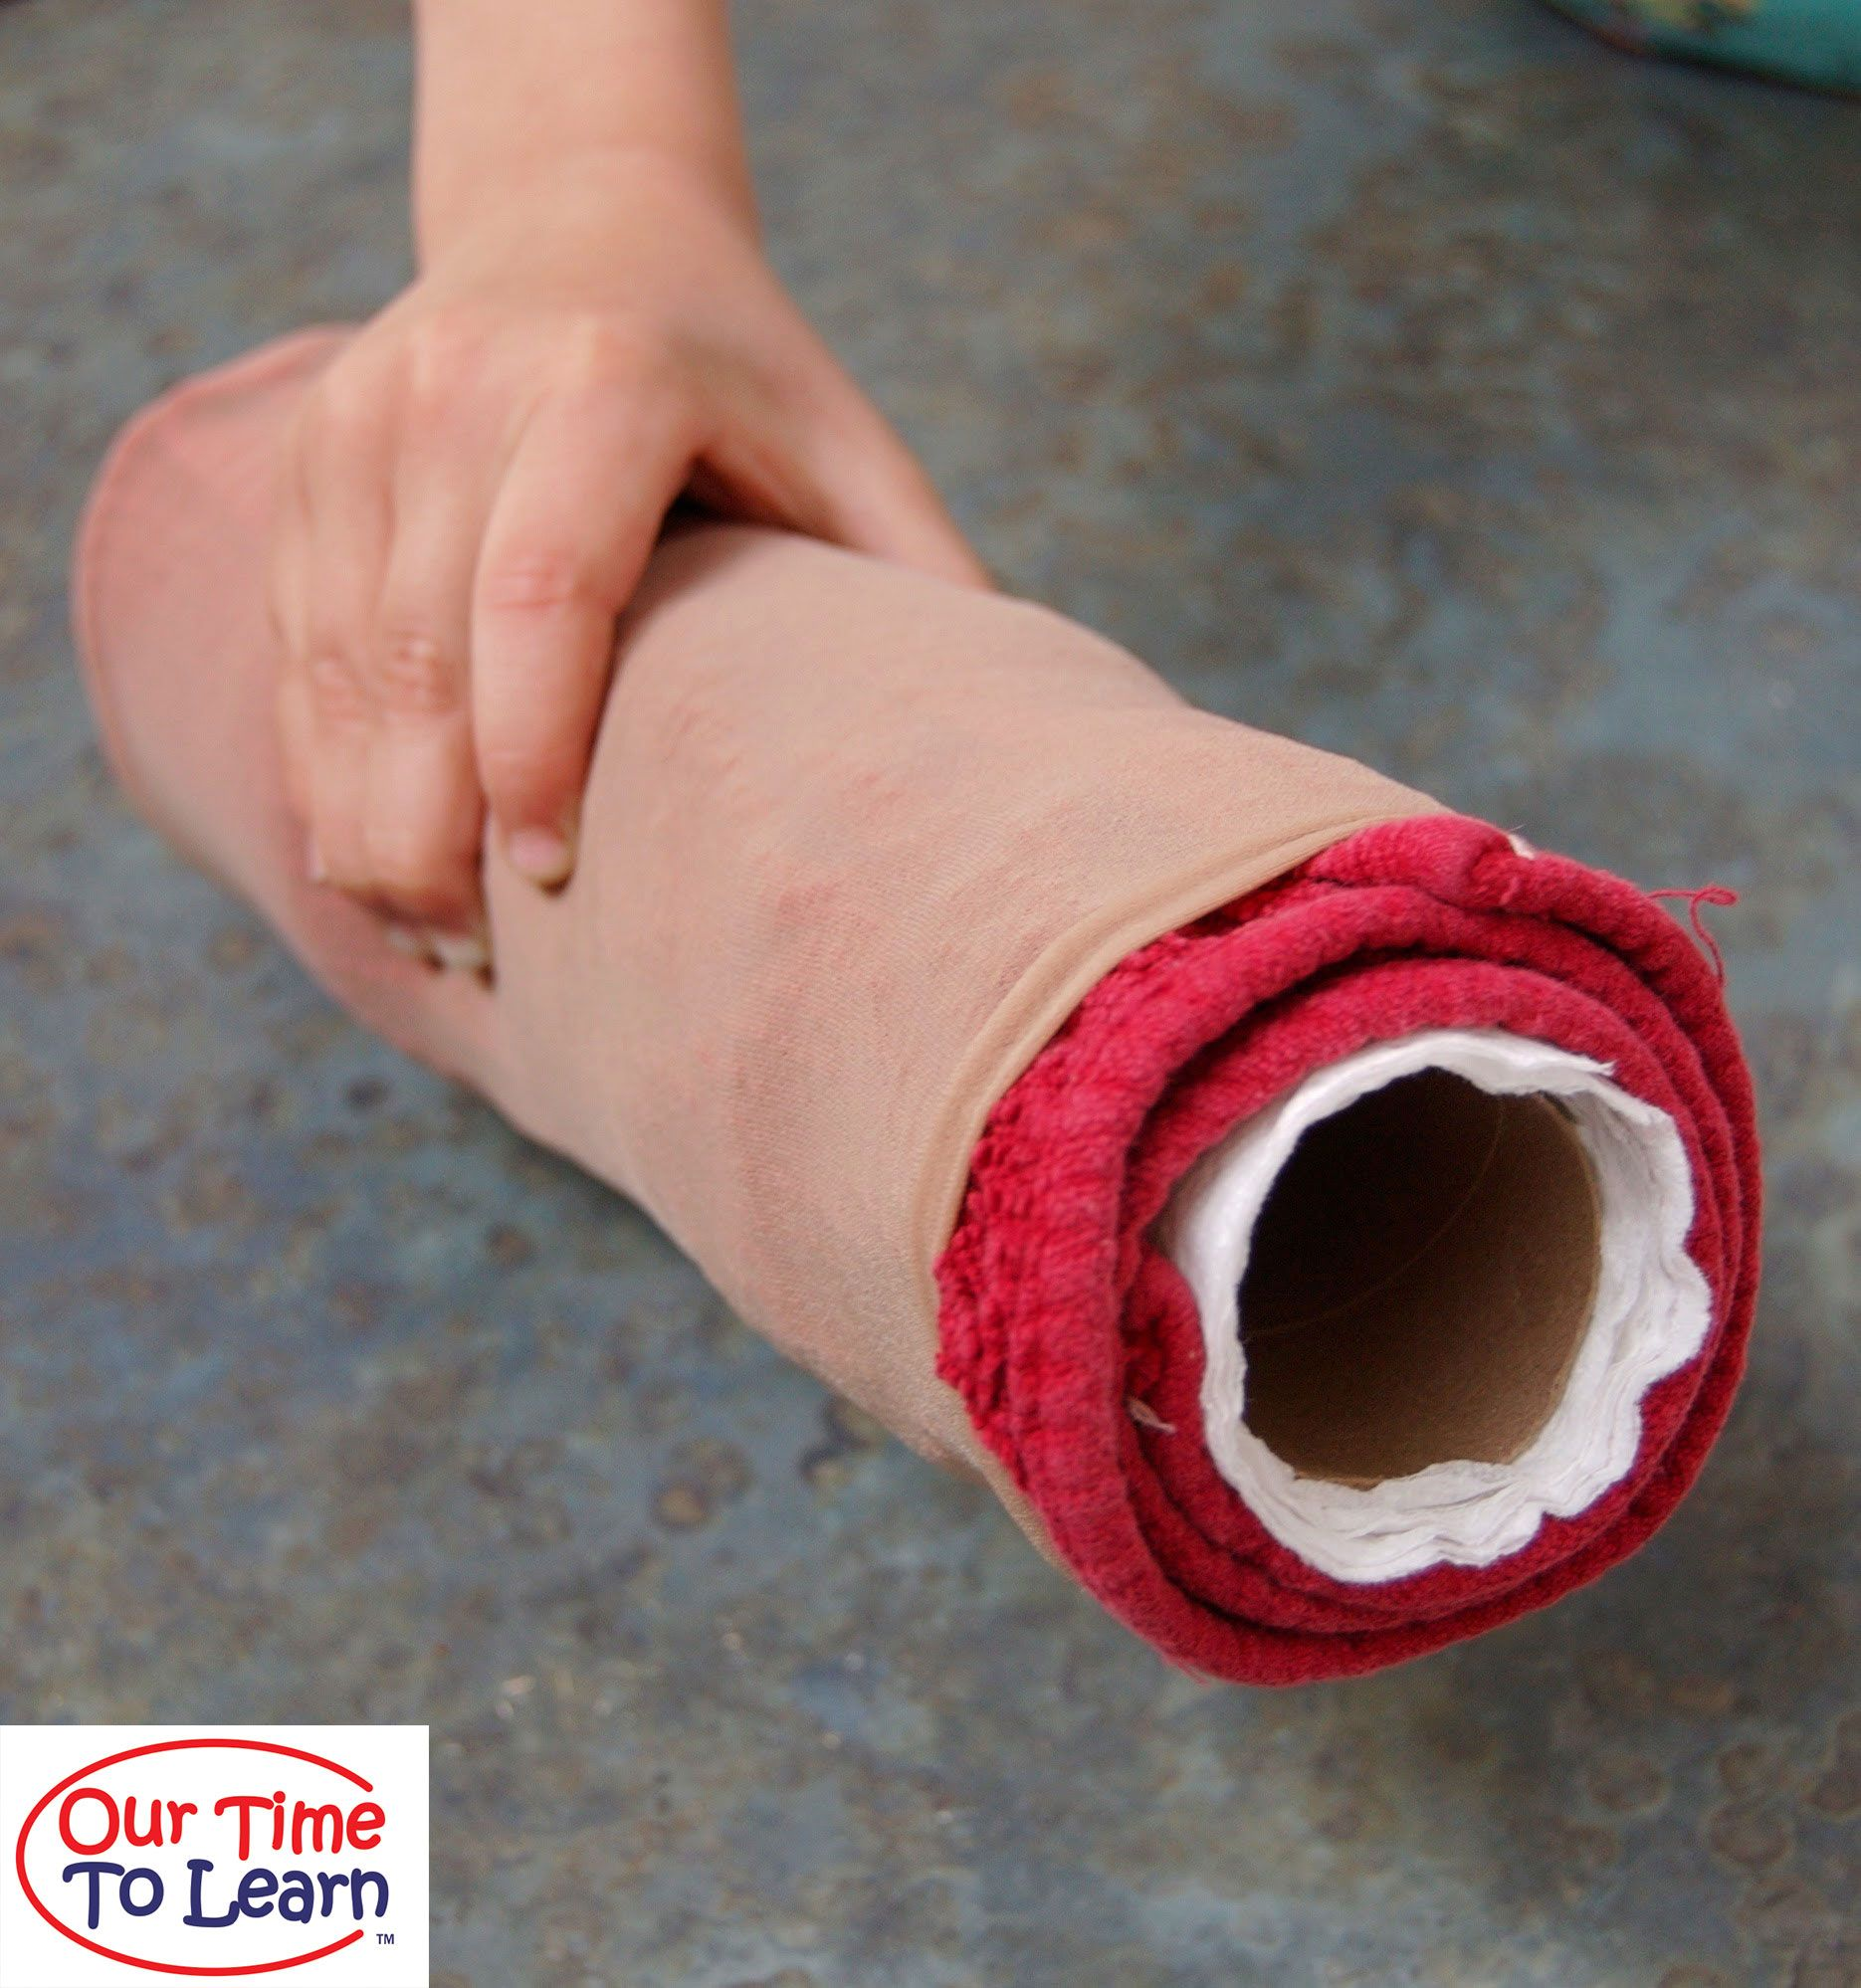 Make A Model Of A Leg With Bone Muscles And Skin We Took A Not Quite Used Up Paper Towel Roll